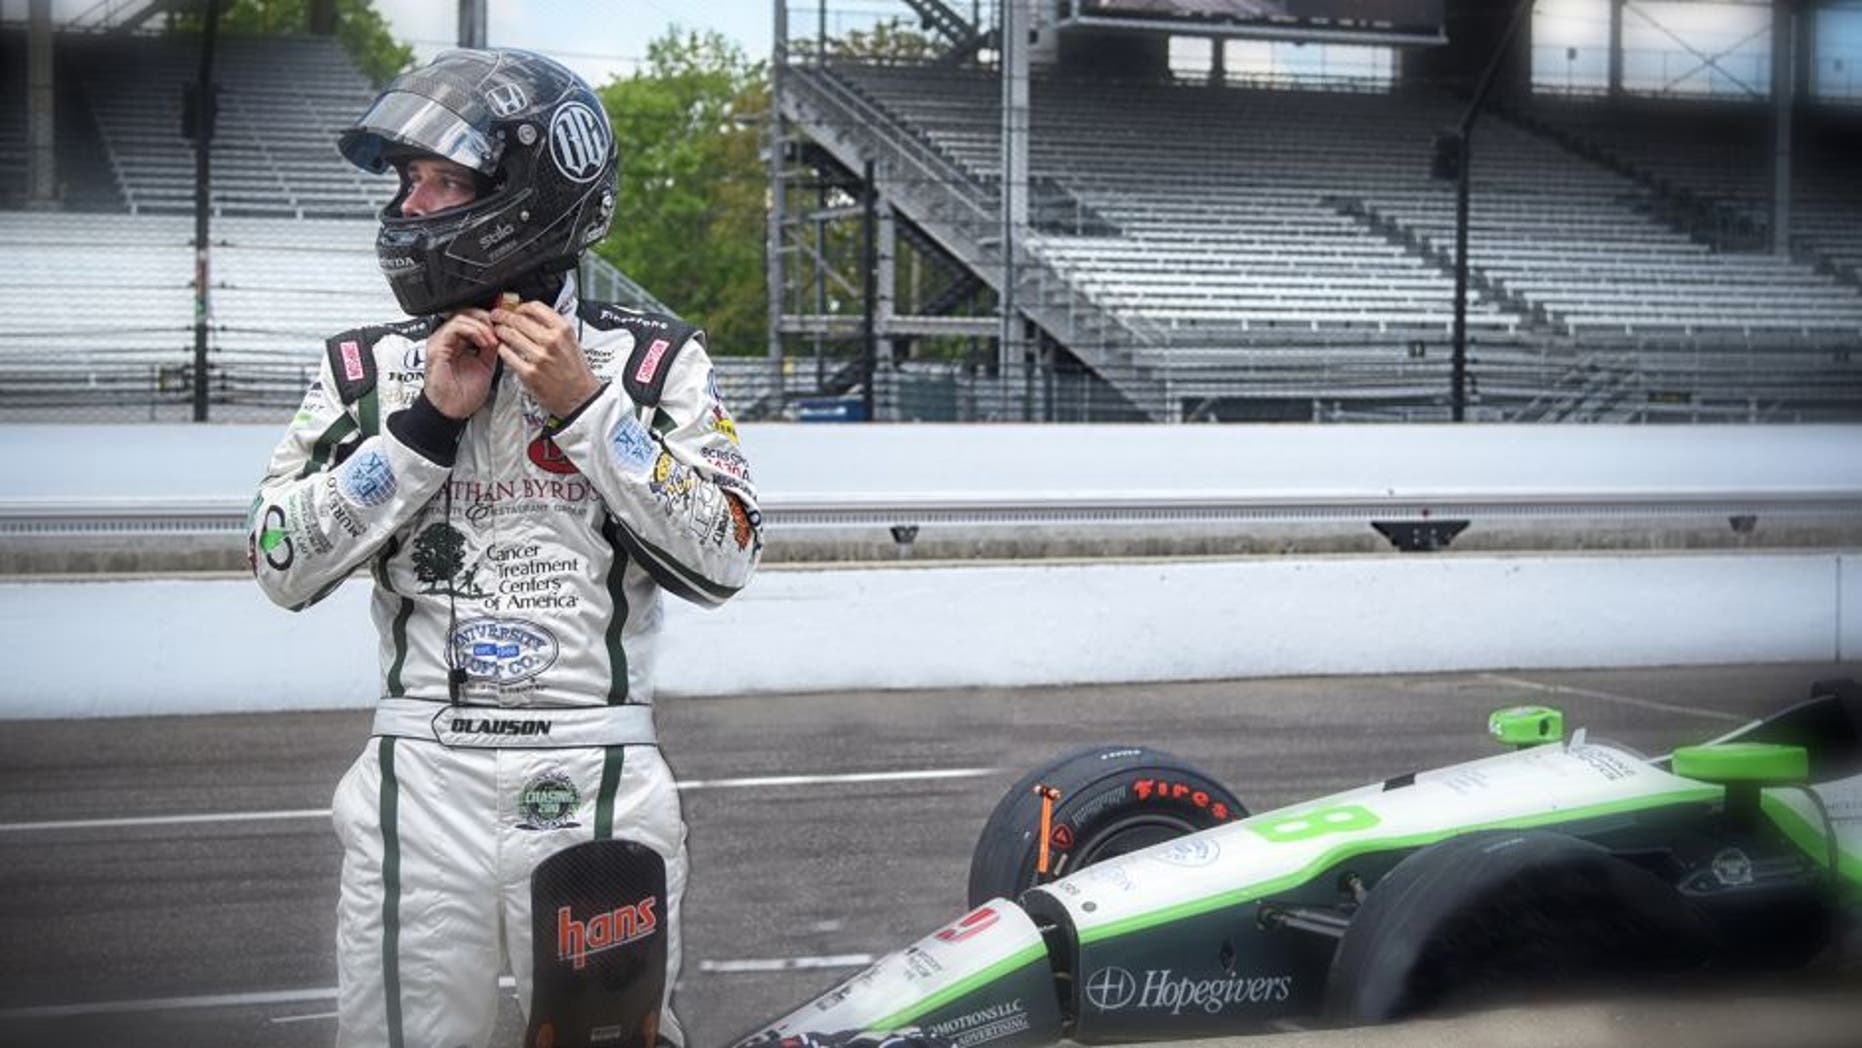 INDIANAPOLIS, IN - MAY 18: Bryan Clauson, driver of the #88 Dallara Honda, looks on during practice at the Indianapolis Motorspeedway on May 18, 2016 in Indianapolis, Indiana. (Photo by Ronald C. Modra/NHL/Getty Images)